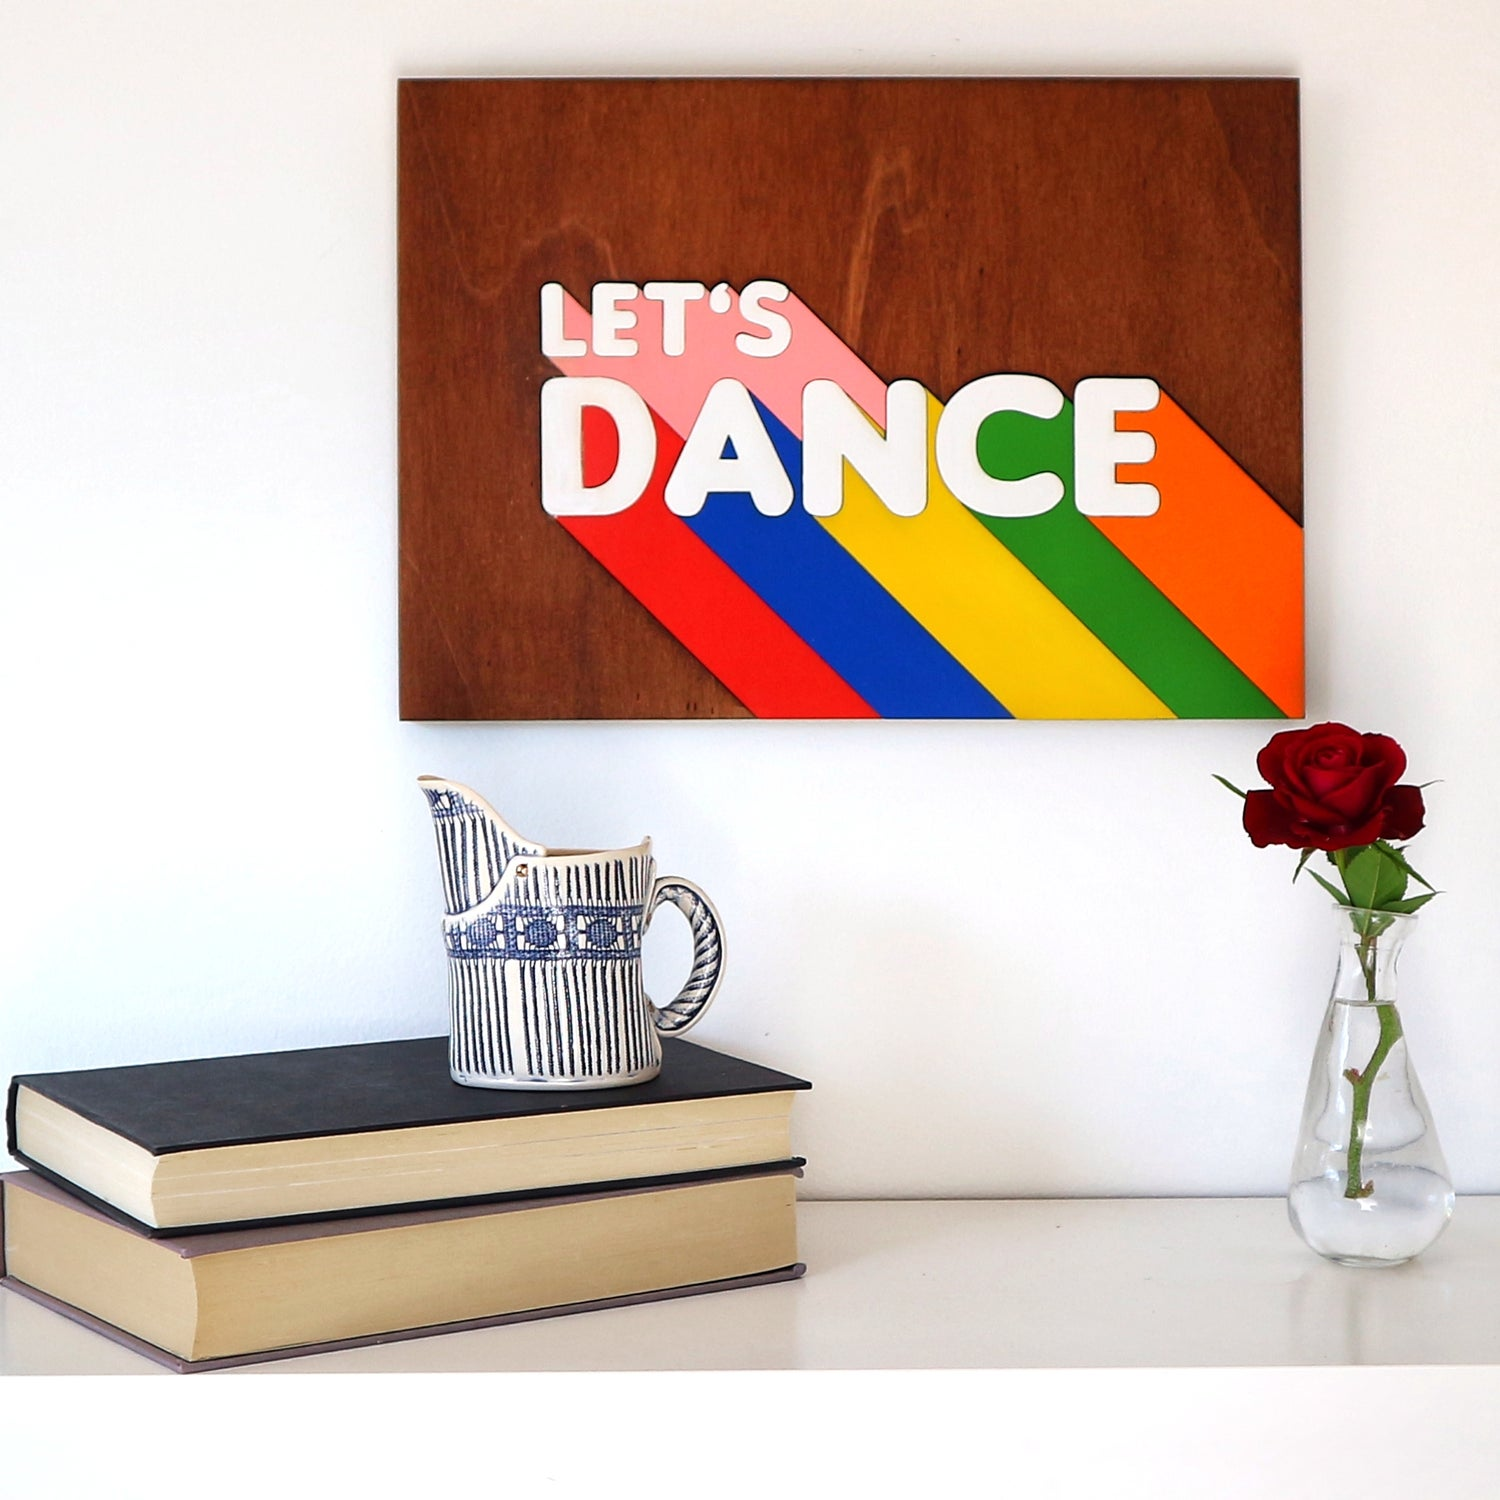 Image of Let's Dance Woodcut Artwork